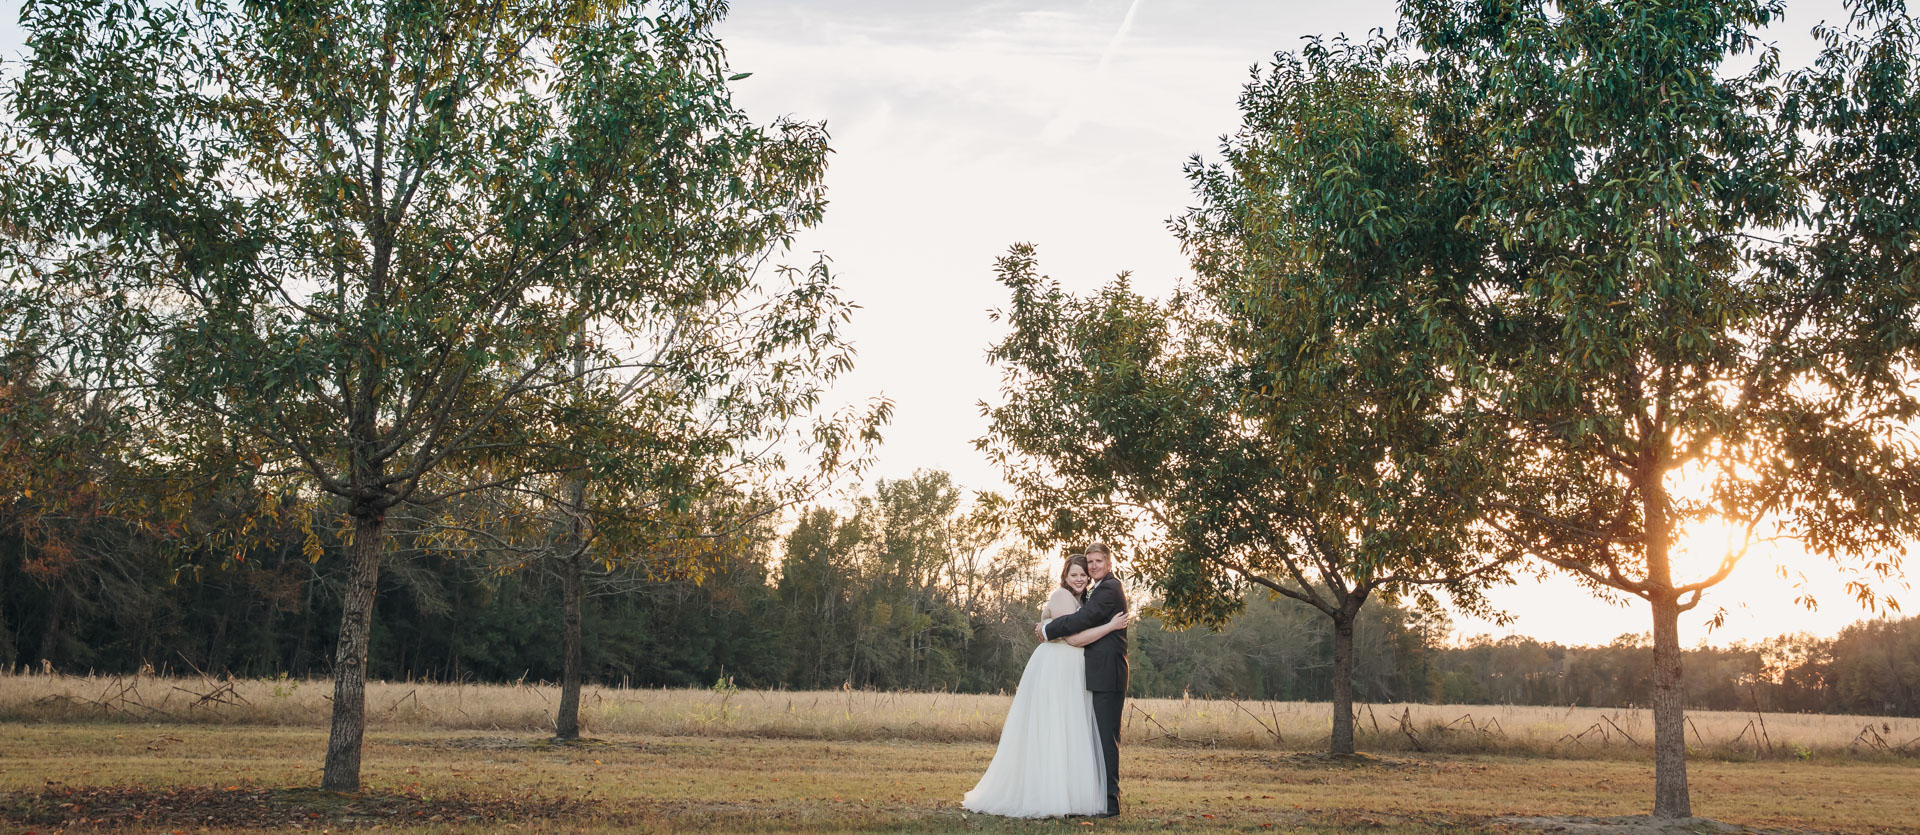 bride-and-groom-embrace